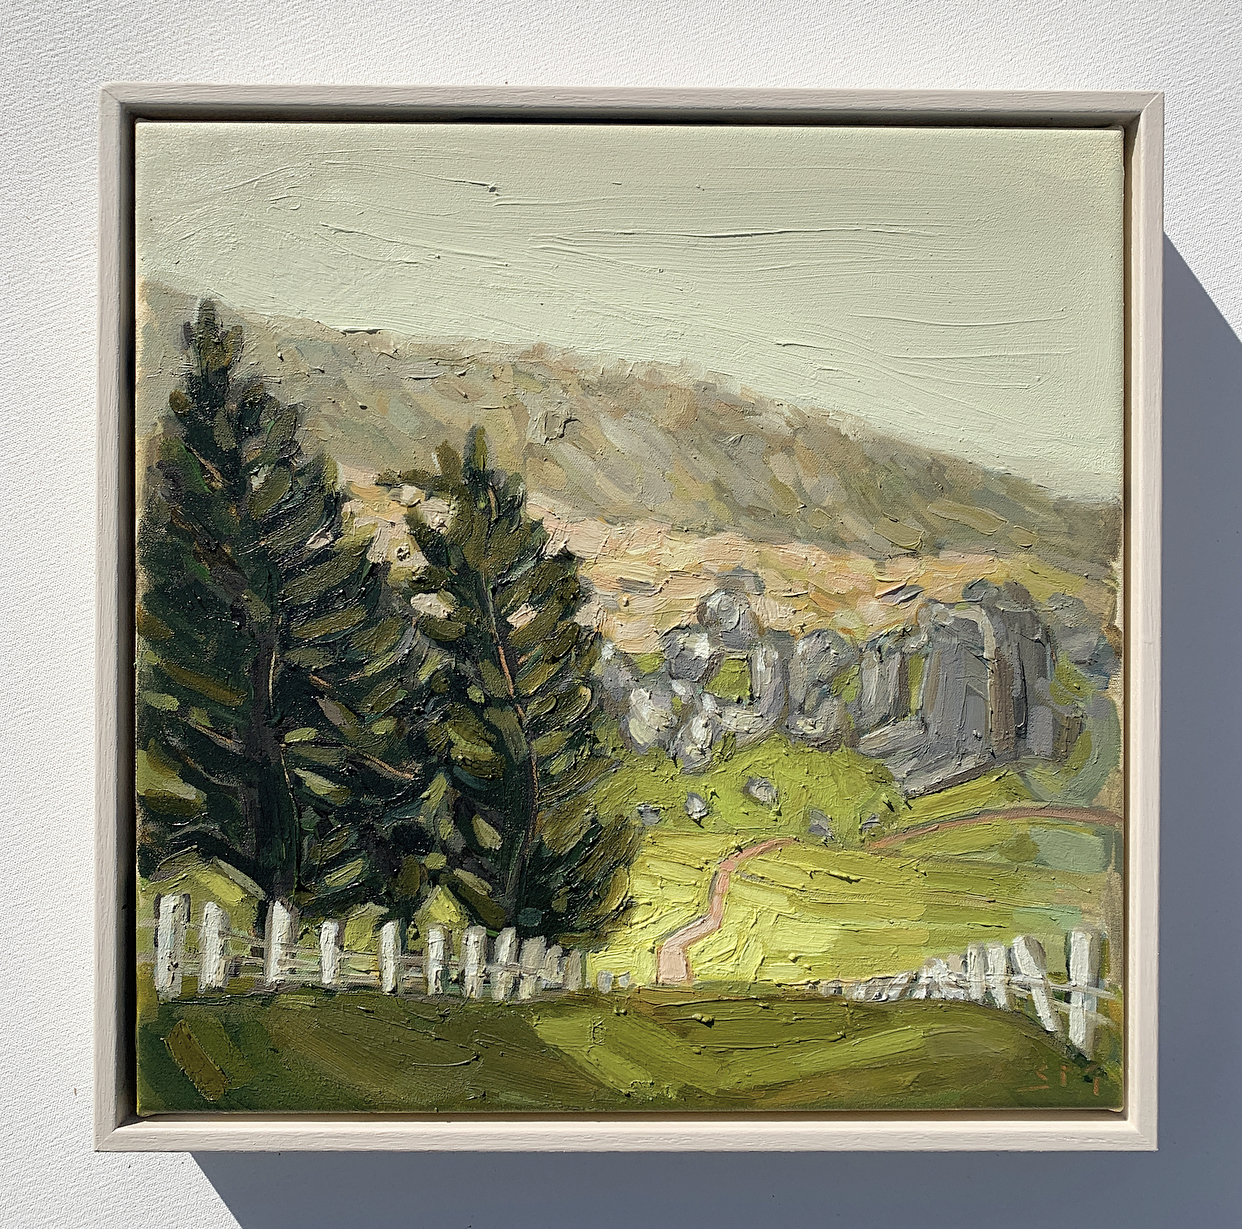 sam michelle 'hills, trees & rocks' 38x3